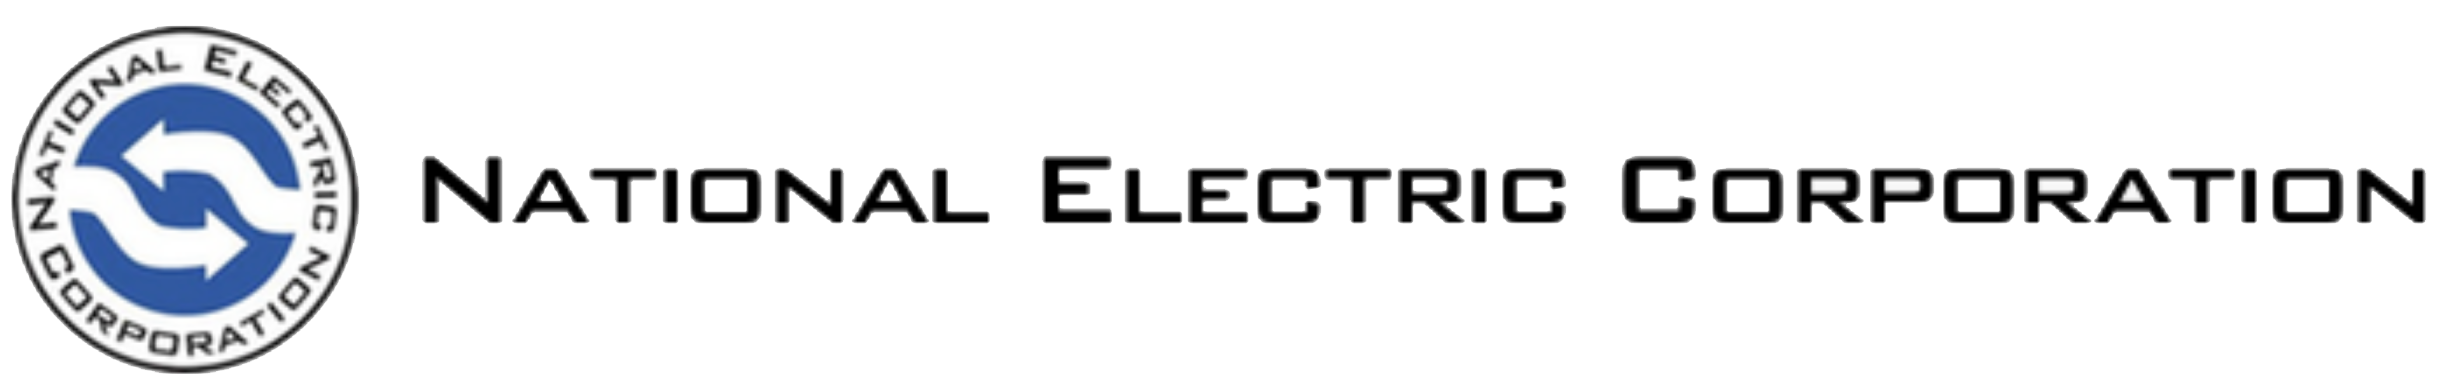 National Electric Corporation